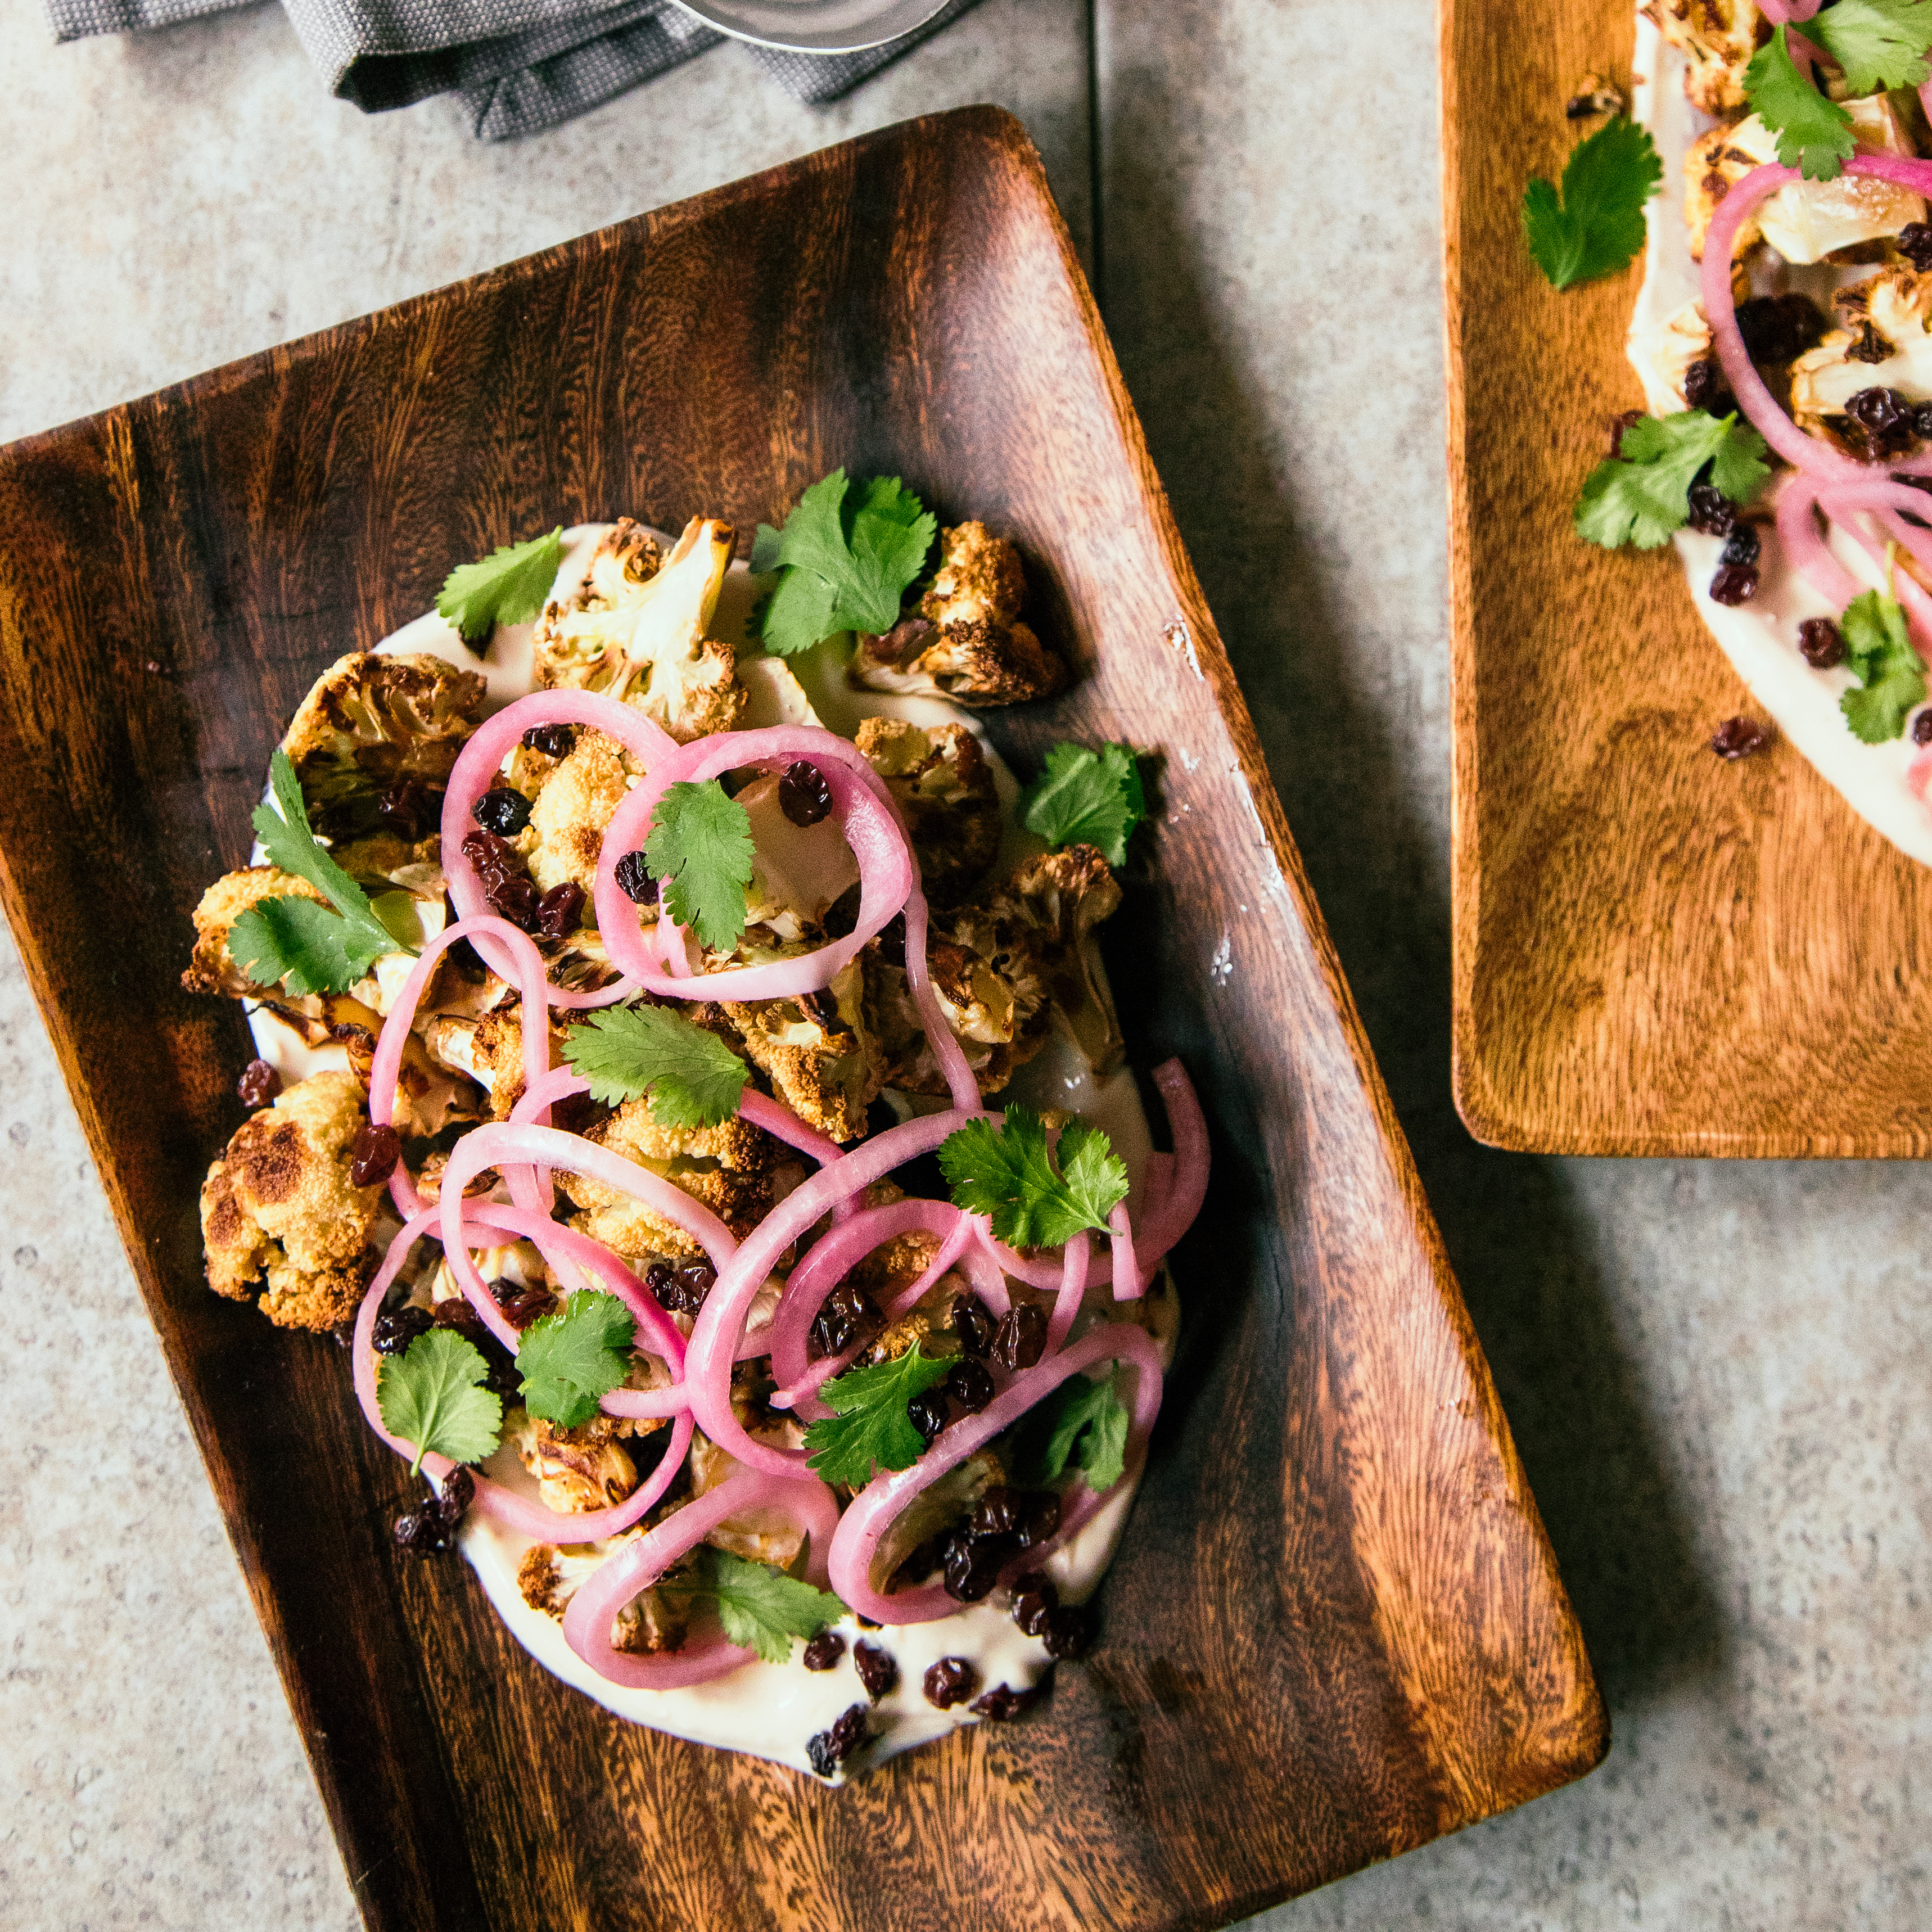 su-Roasted Cauliflower with Pickled Onion and Yogurt Sauce Image